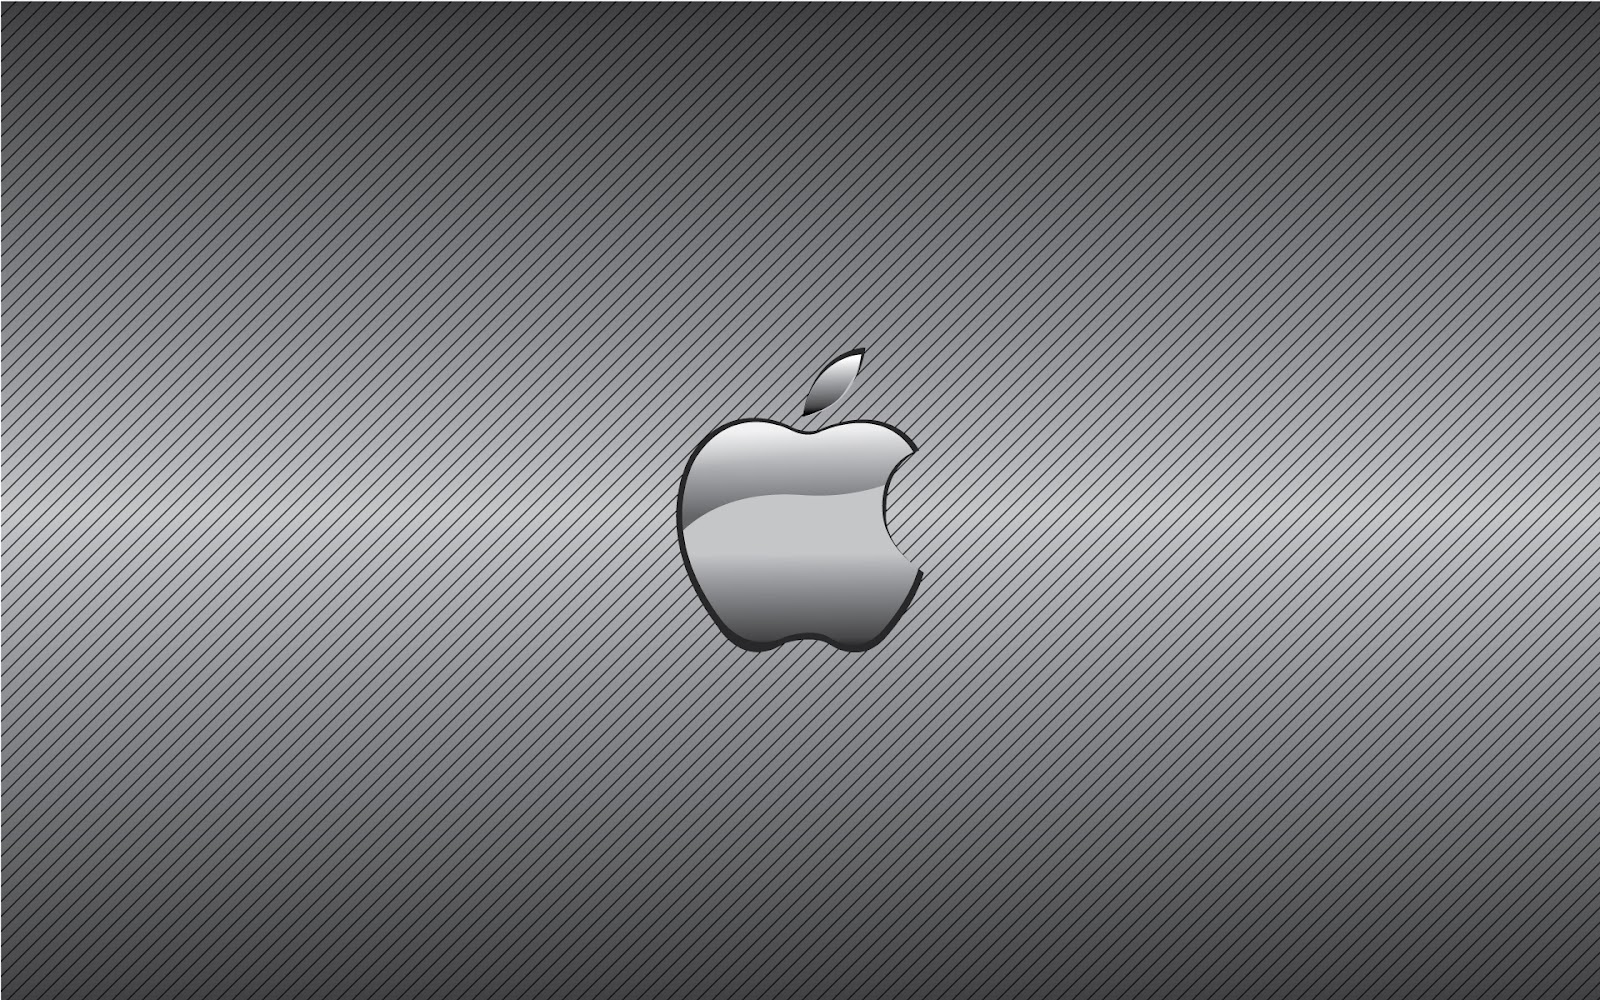 apple iphone hd wallpapers apple iphone hd wallpapers apple iphone 1600x1000